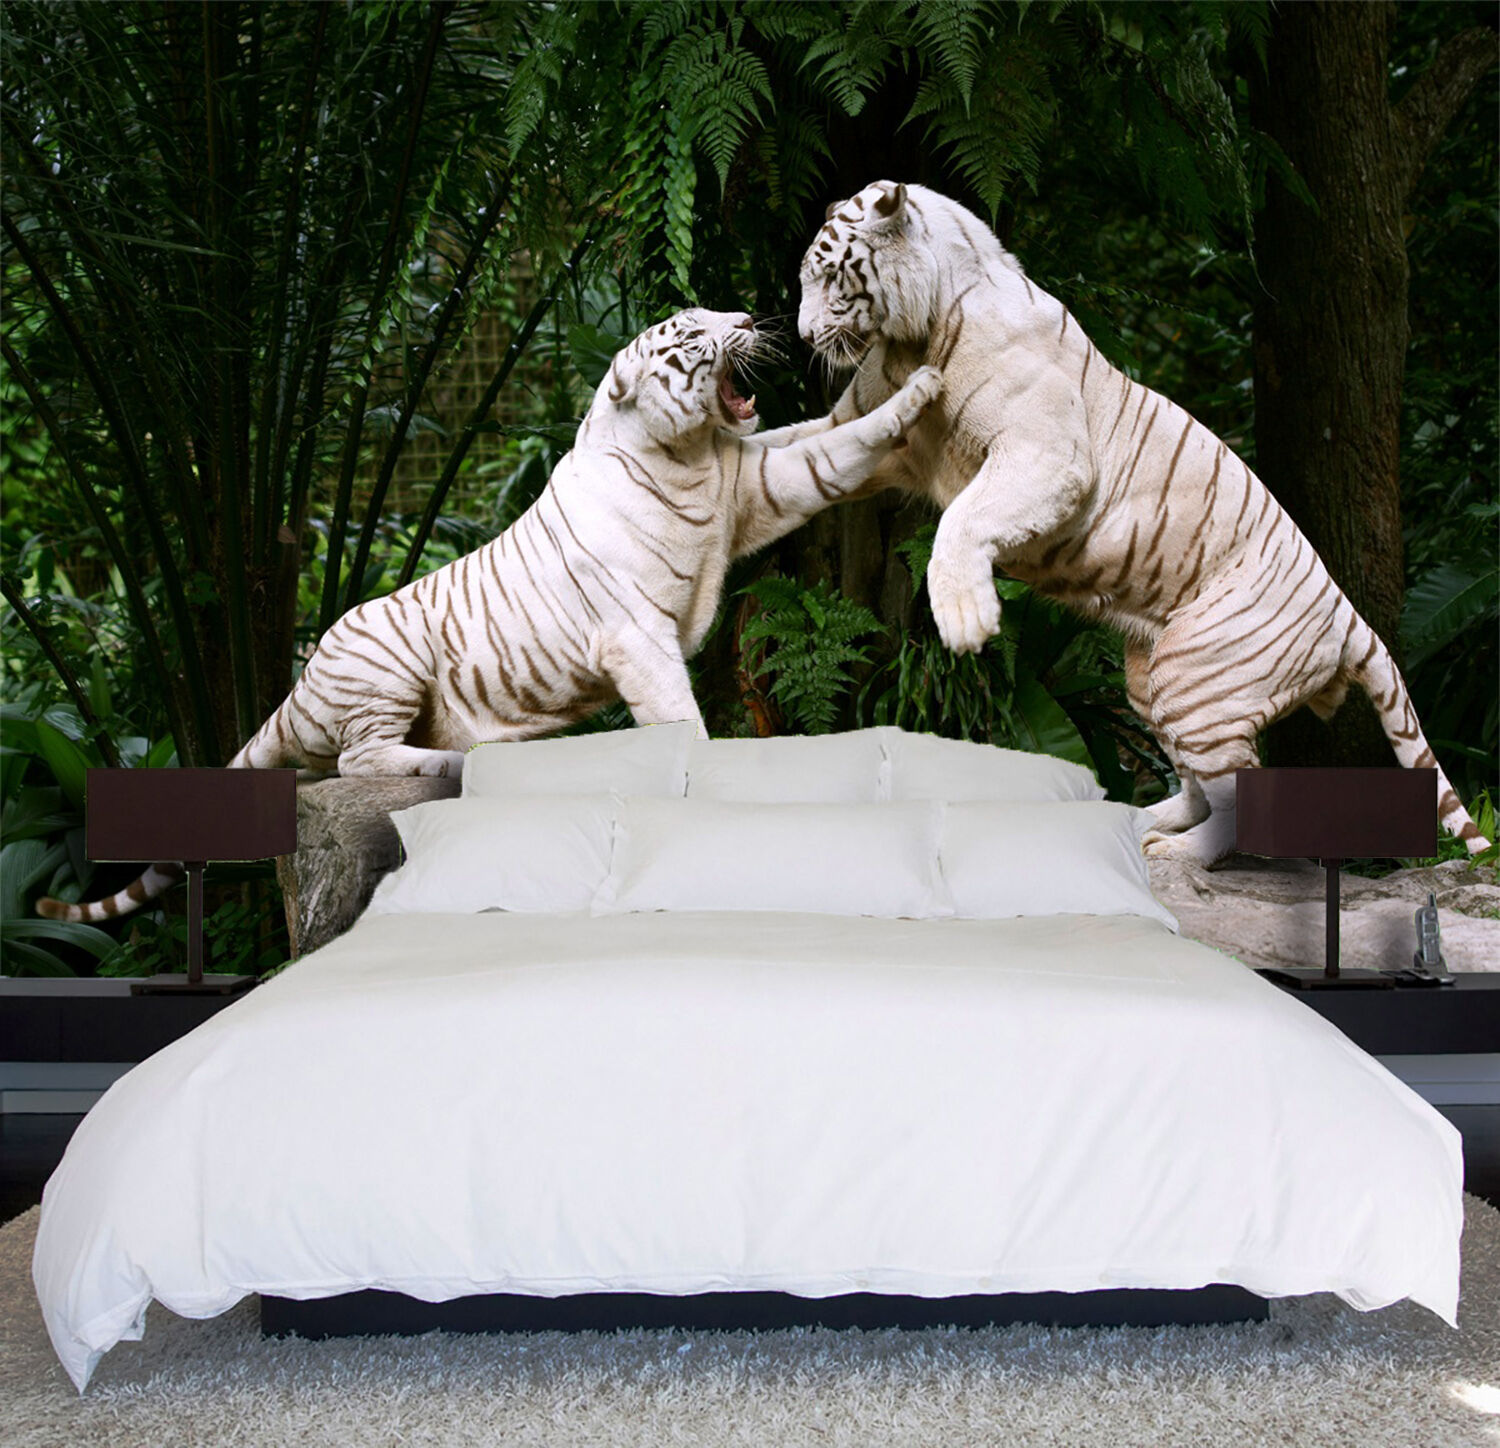 3D Fighting Tigers 21 WallPaper Murals Wall Print Decal Wall Deco AJ WALLPAPER